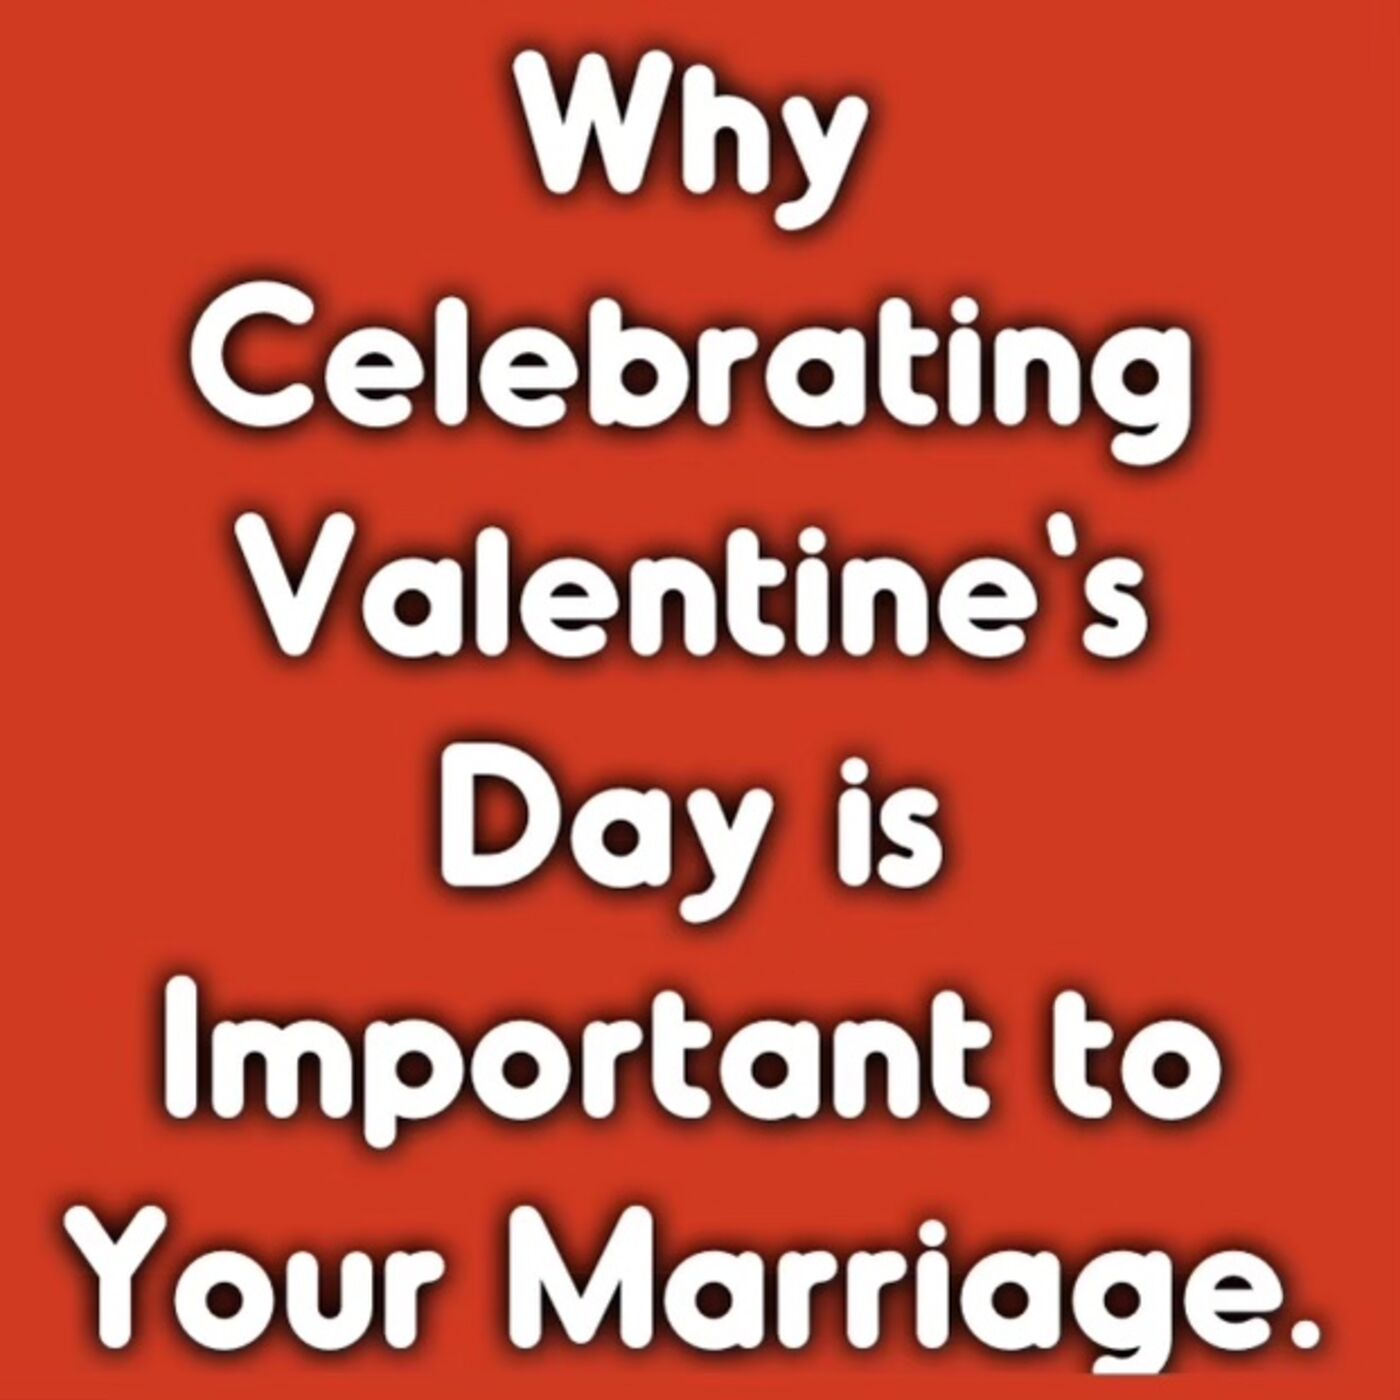 Why Celebrating Valentine's Day is Important to Your Marriage